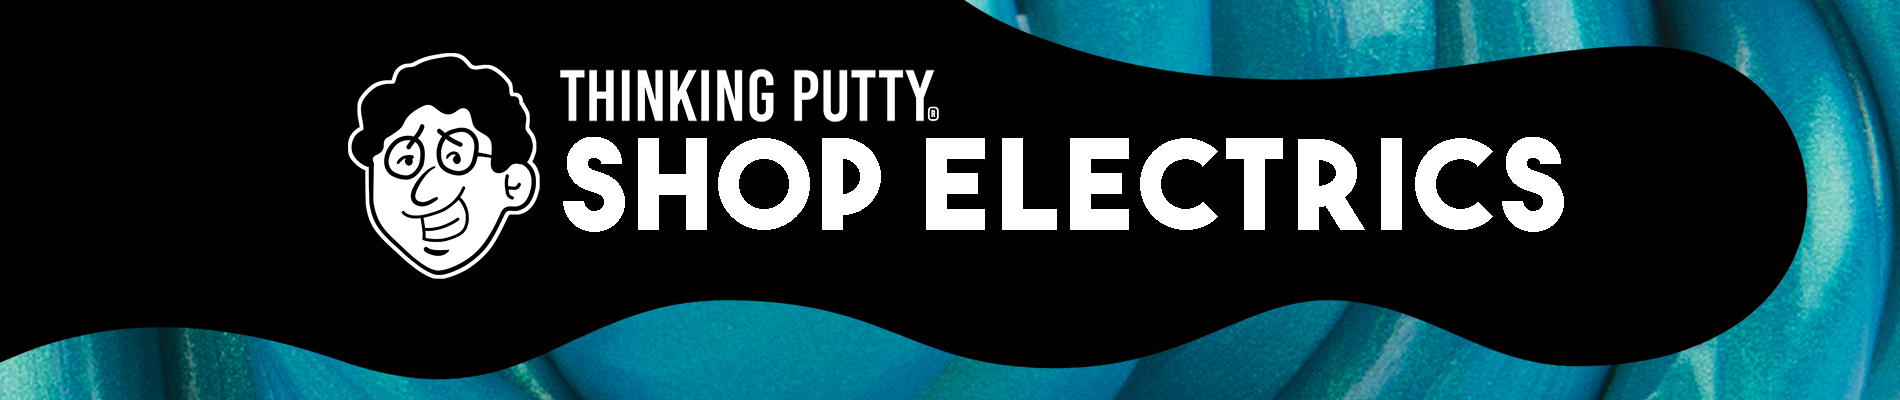 Shop Electric Thinking Putty